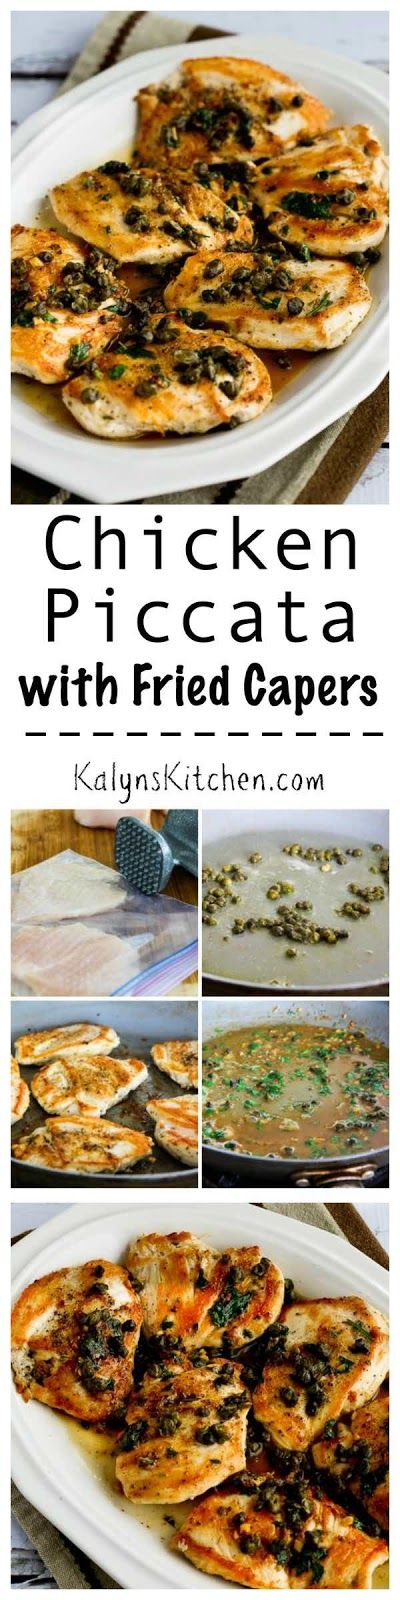 Chicken Piccata with Fried Capers is a low-carb and gluten-free ...